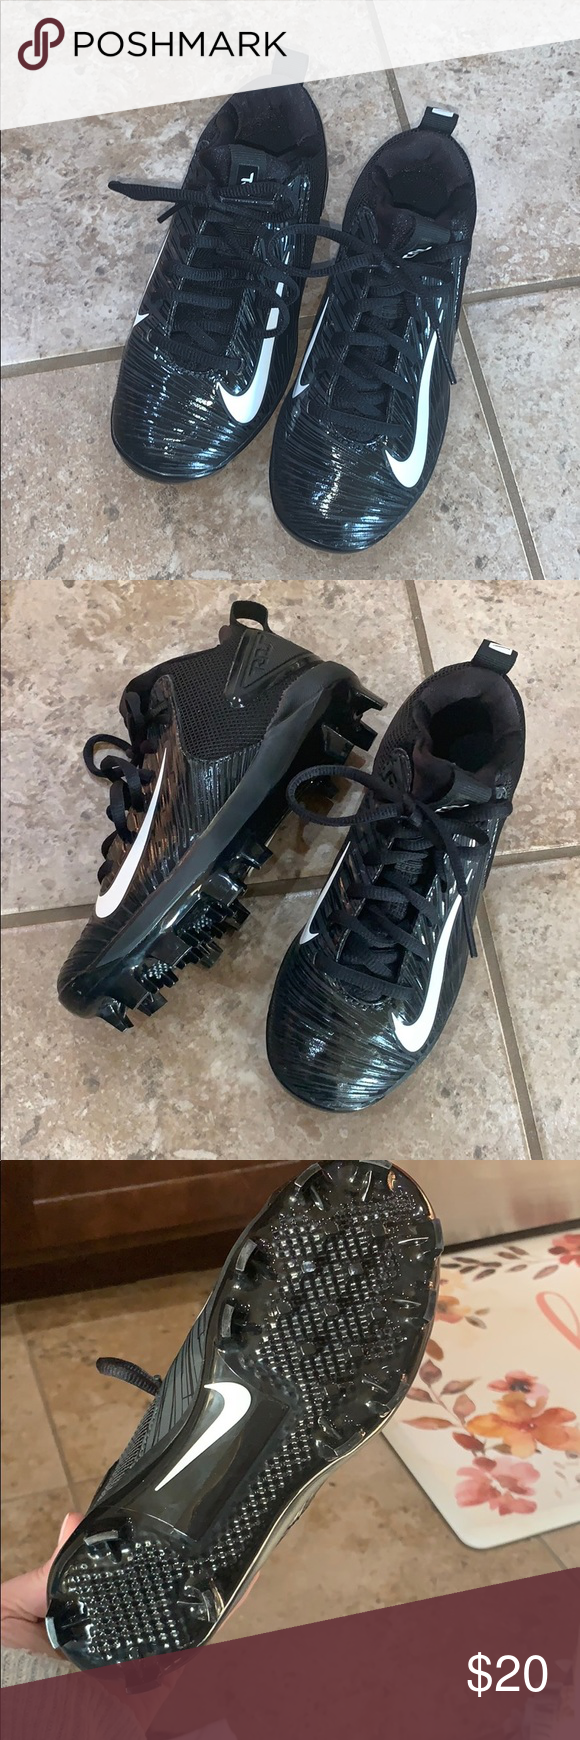 Mike Trout Cleats Nwob Mike Trout Cleats Nike Mlb Shoes In 2020 With Images Kids Shoes All Black Sneakers Platform Sneakers